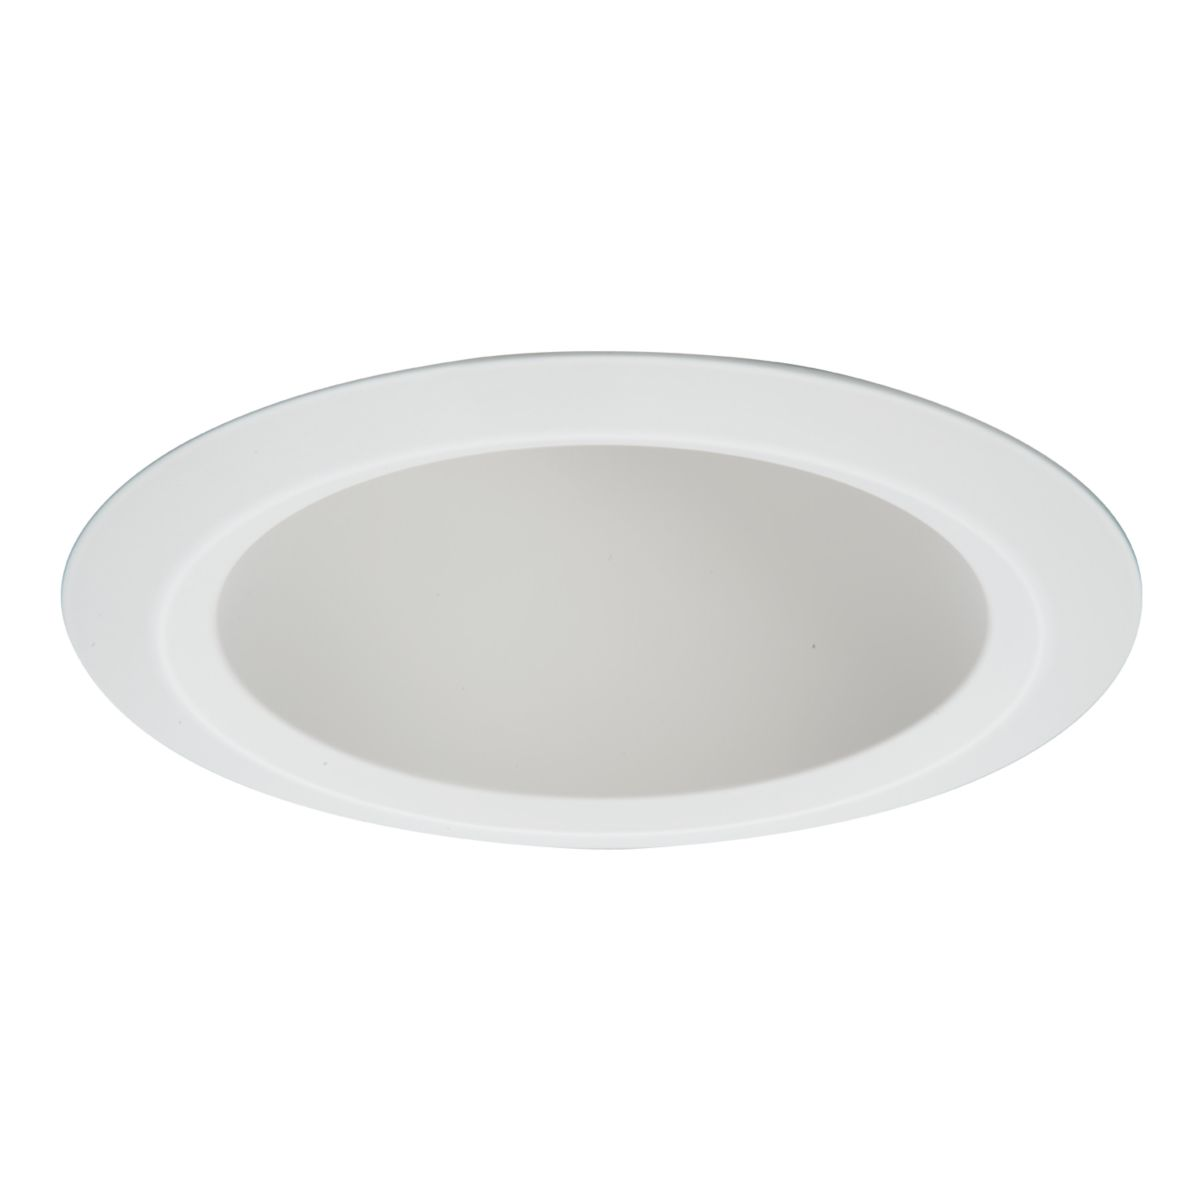 5121 Shallow Full Cone Reflector, Self-flange